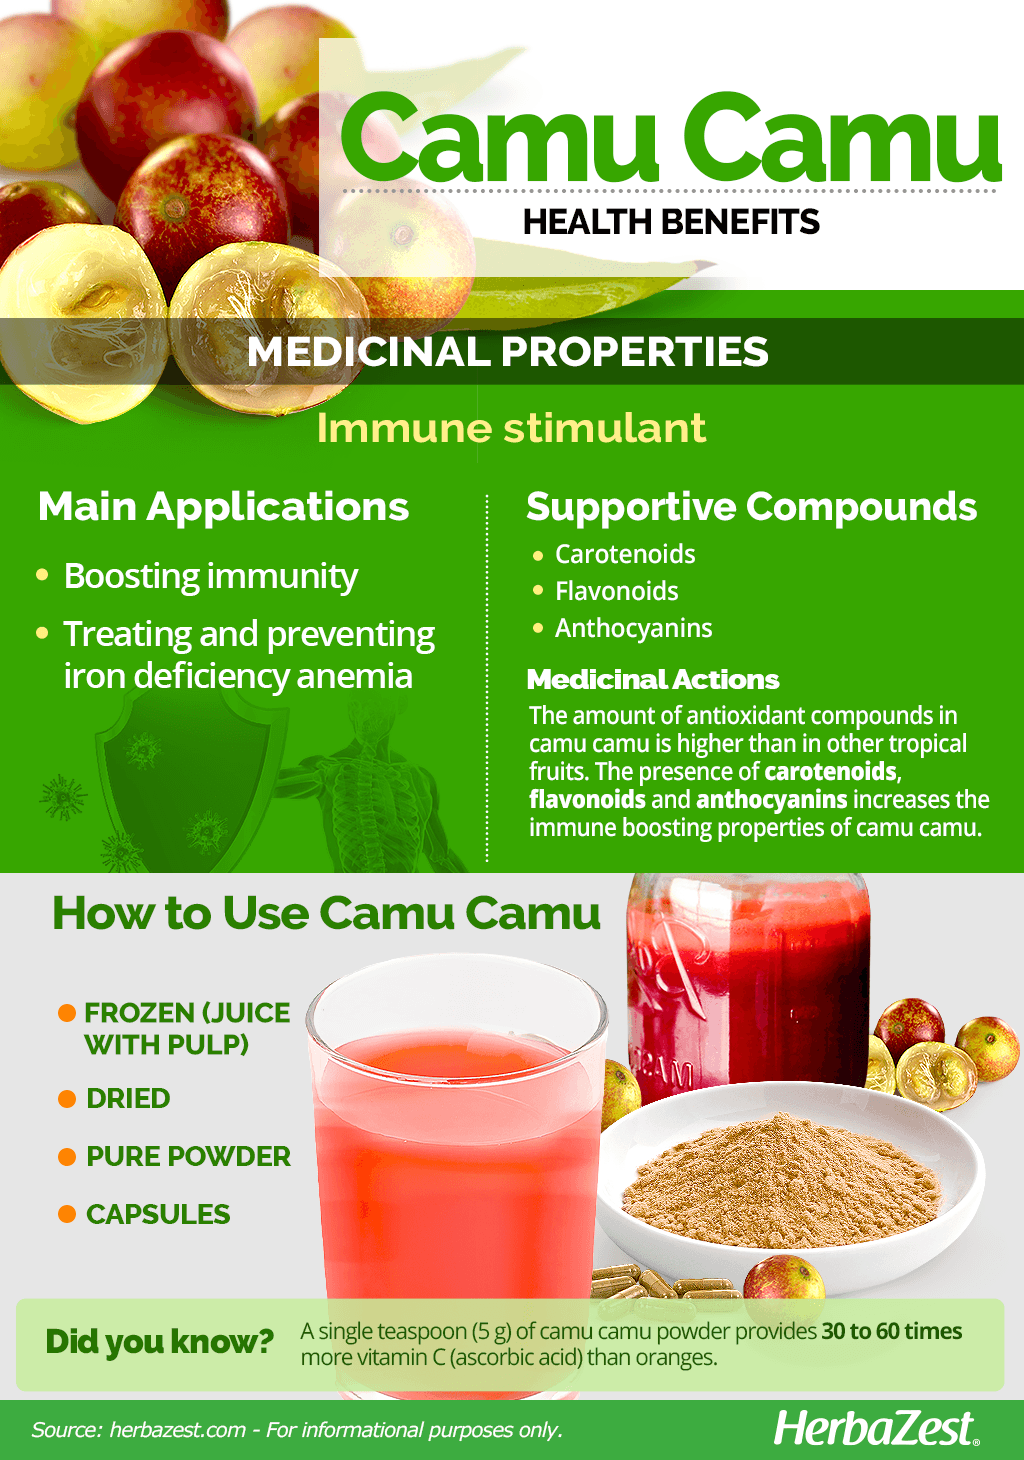 All About Camu Camu